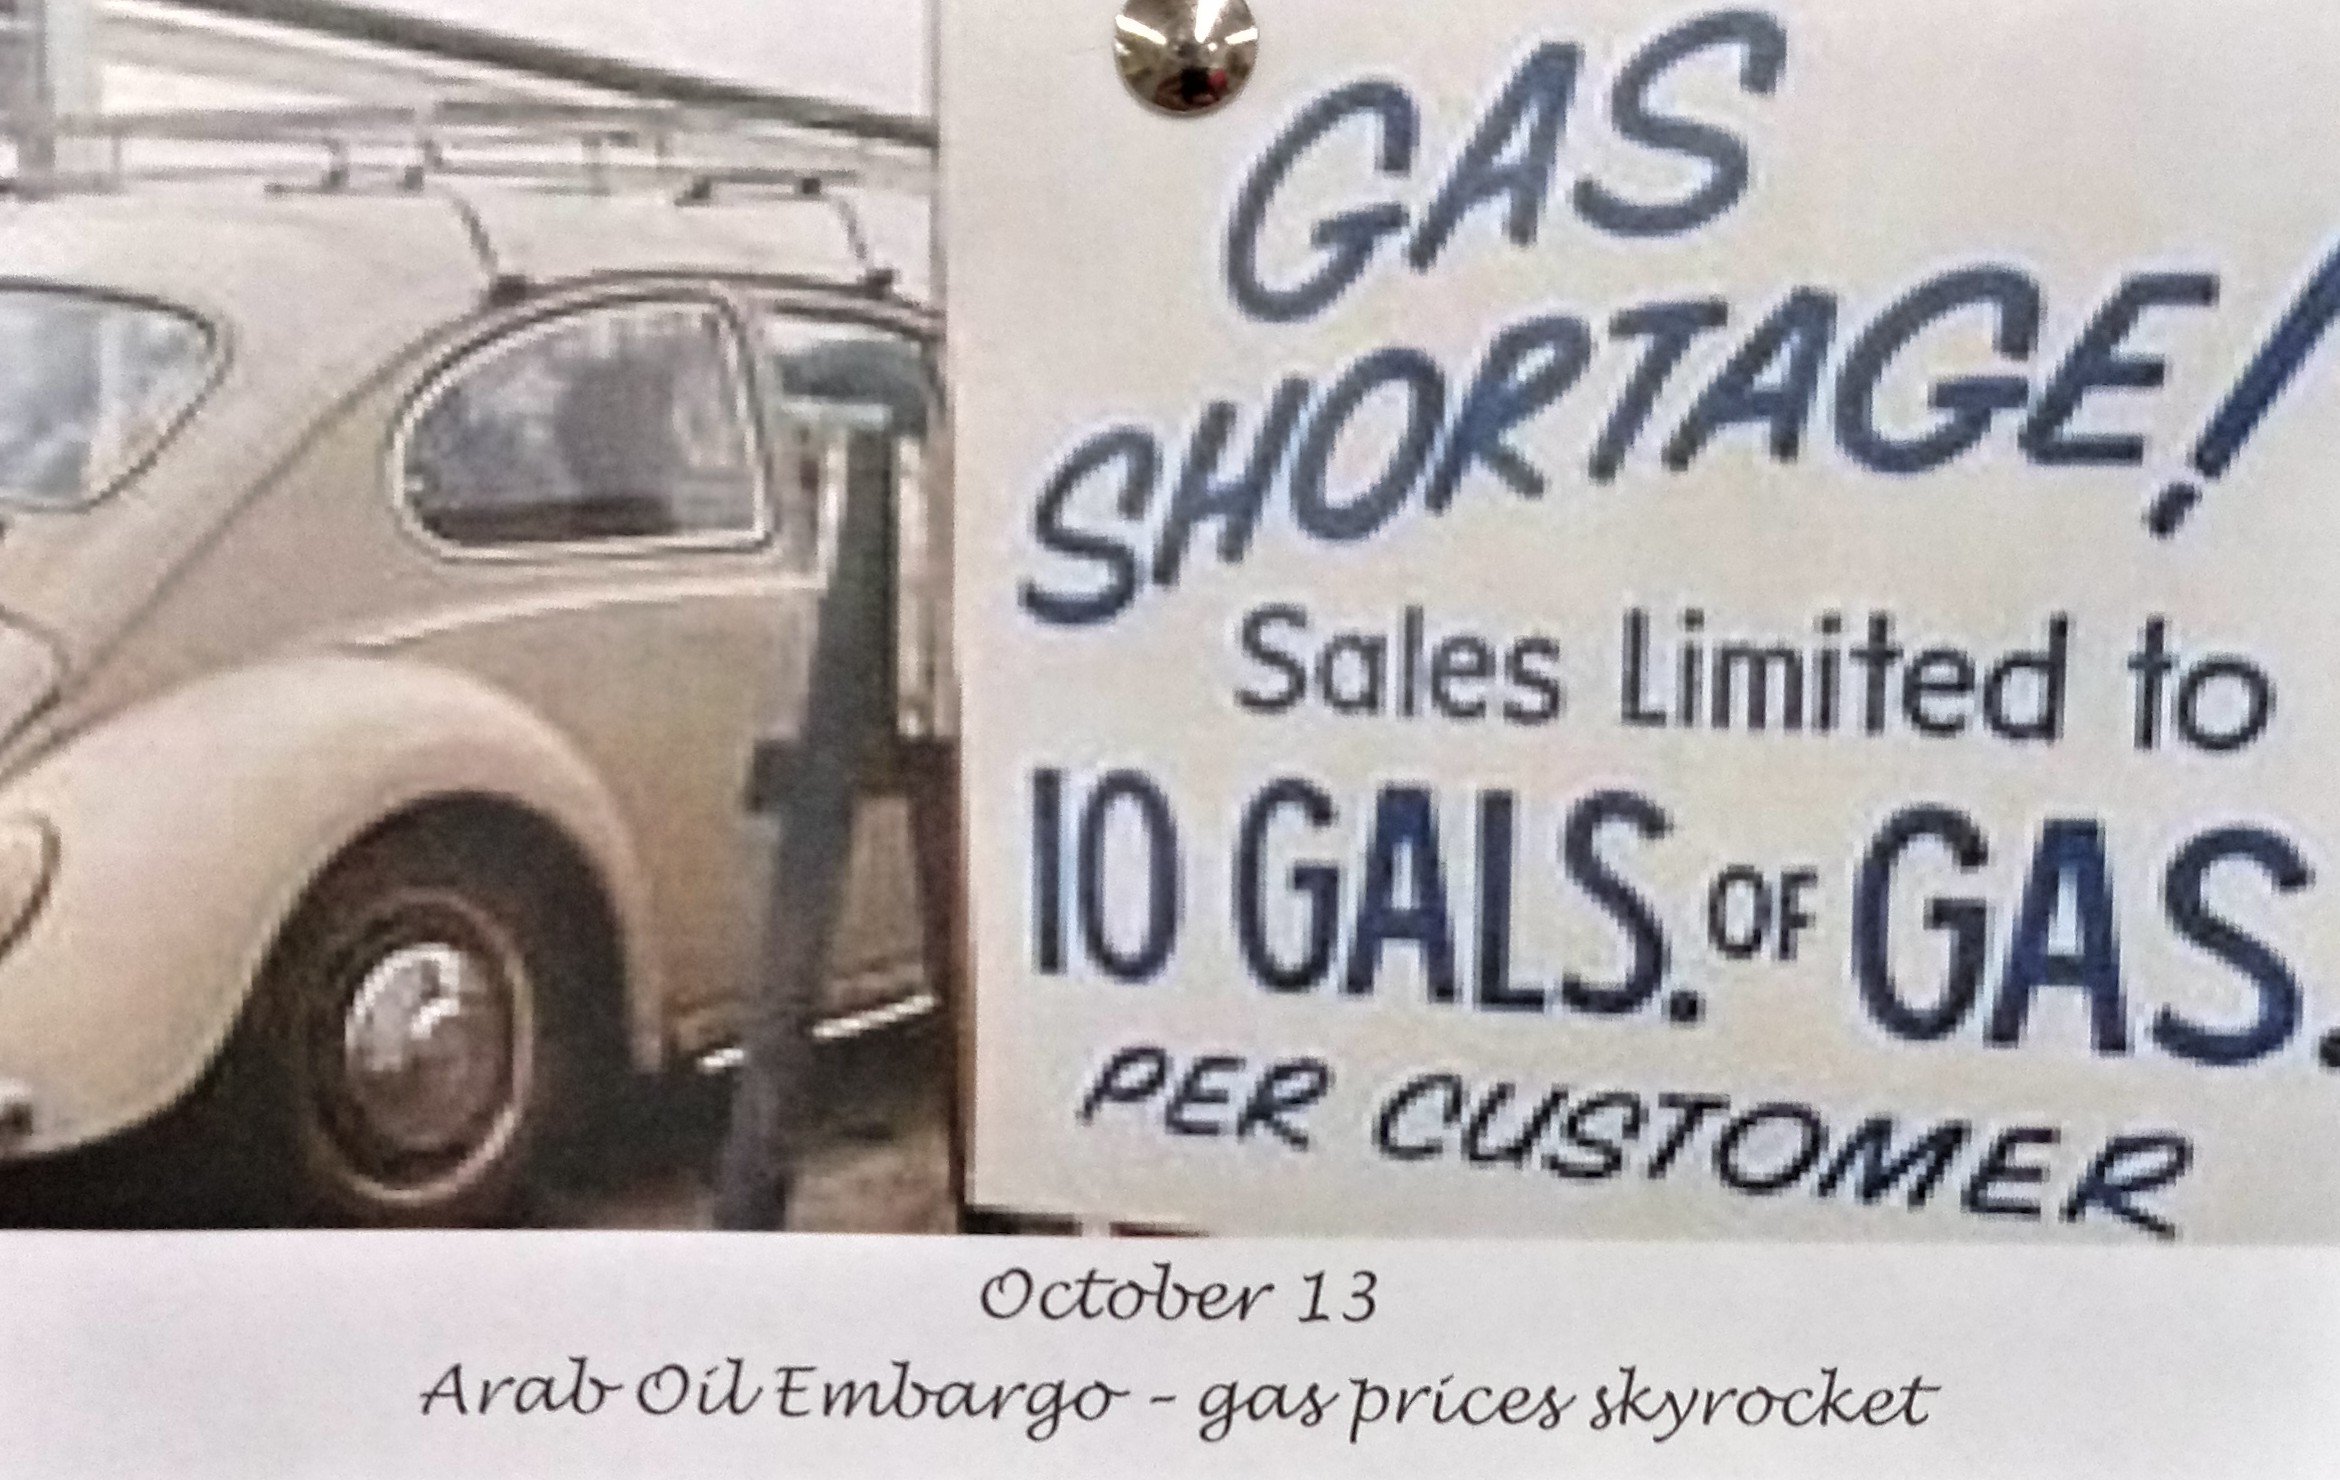 """Photograph of a sign posted at a gas station next to a Volkswagon Beetle car. Sign reads: """"Gas Shortage! Sales limited to 10 GALS. of GAS PER CUSTOMER""""."""